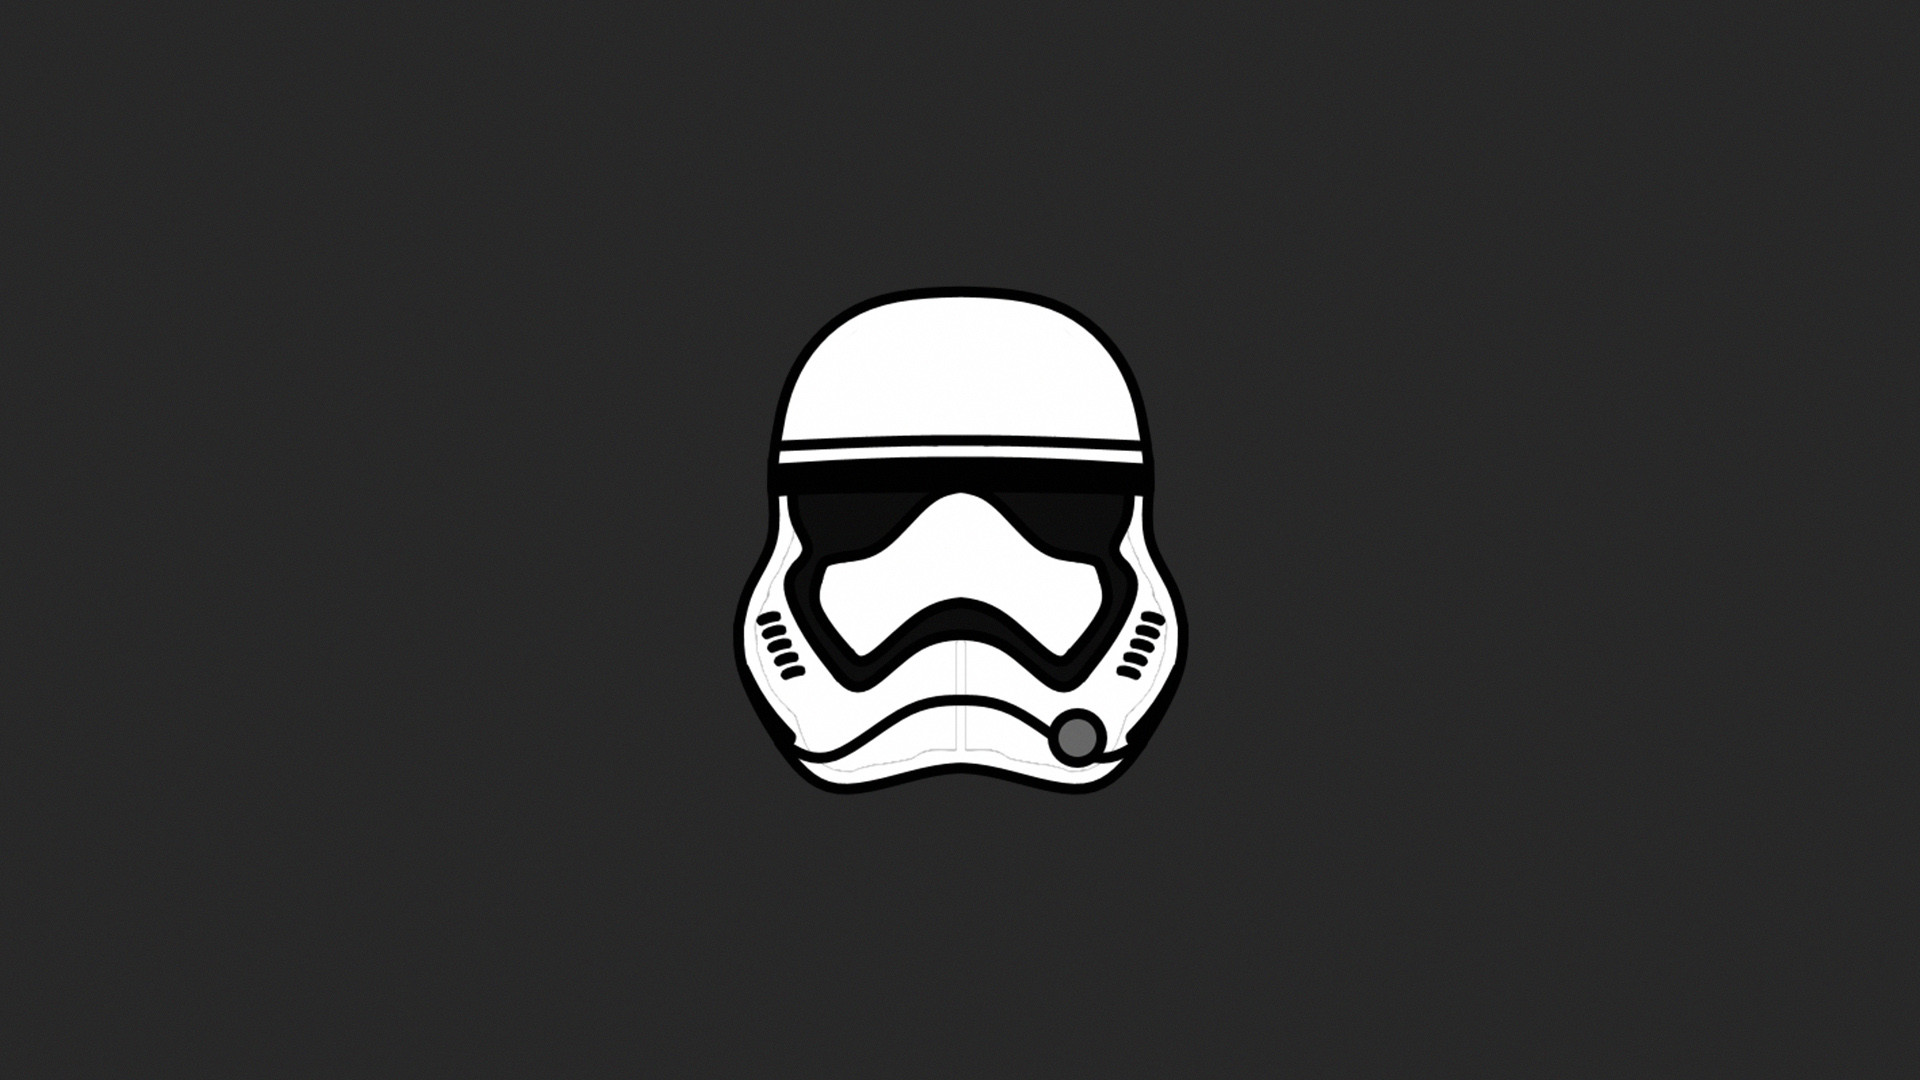 Imperial Stormtrooper Wallpaper 60 Images